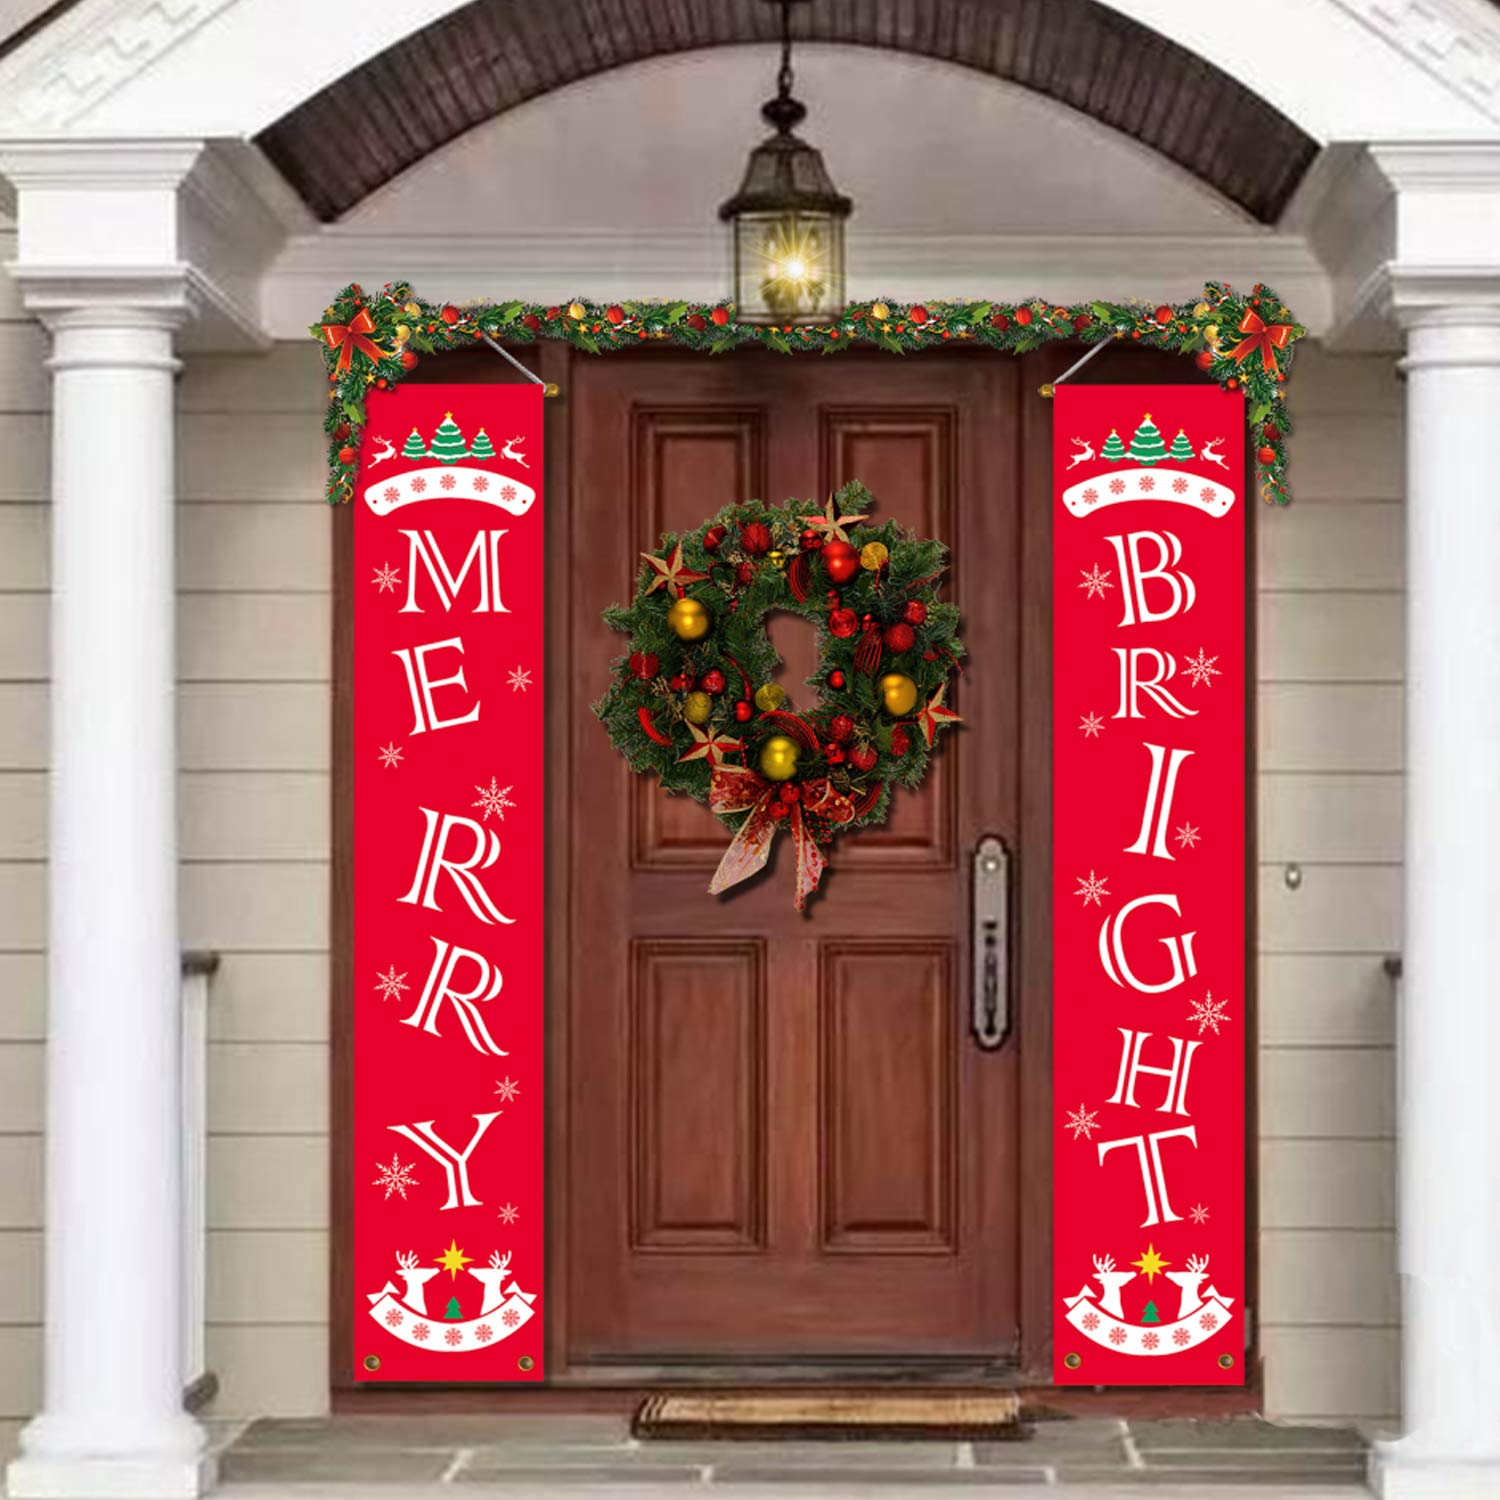 JOZON Christmas Decorations Outdoor Indoor Merry Bright Porch Sign Red Xmas Decor Banners for Holiday Home Wall Door Apartment Party Christmas New Year Decorations